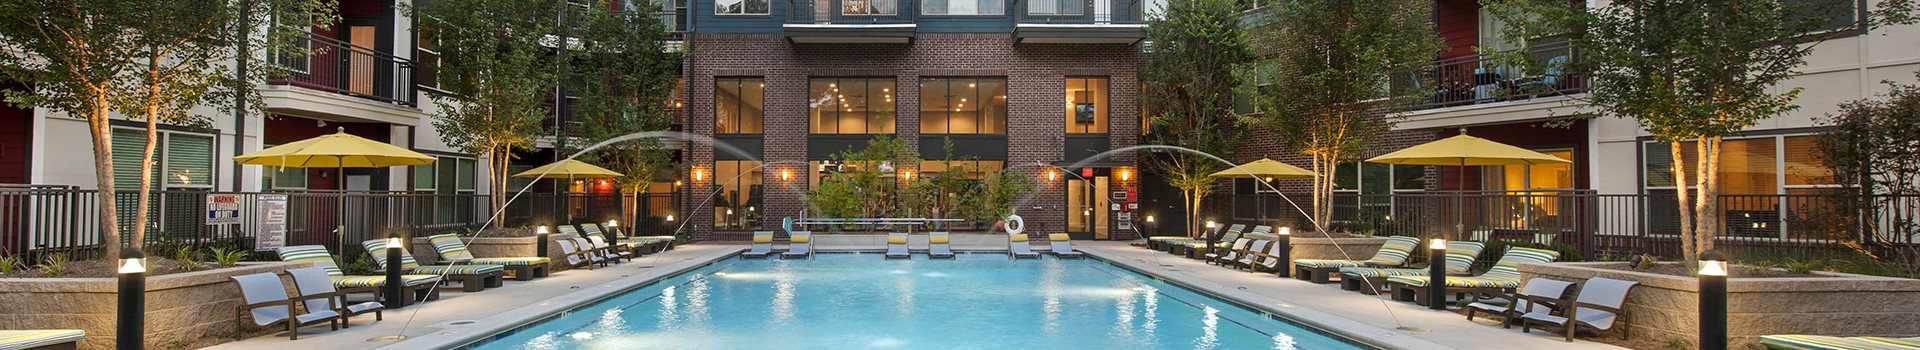 Banner Image of Apartment Pool in Vinings GA